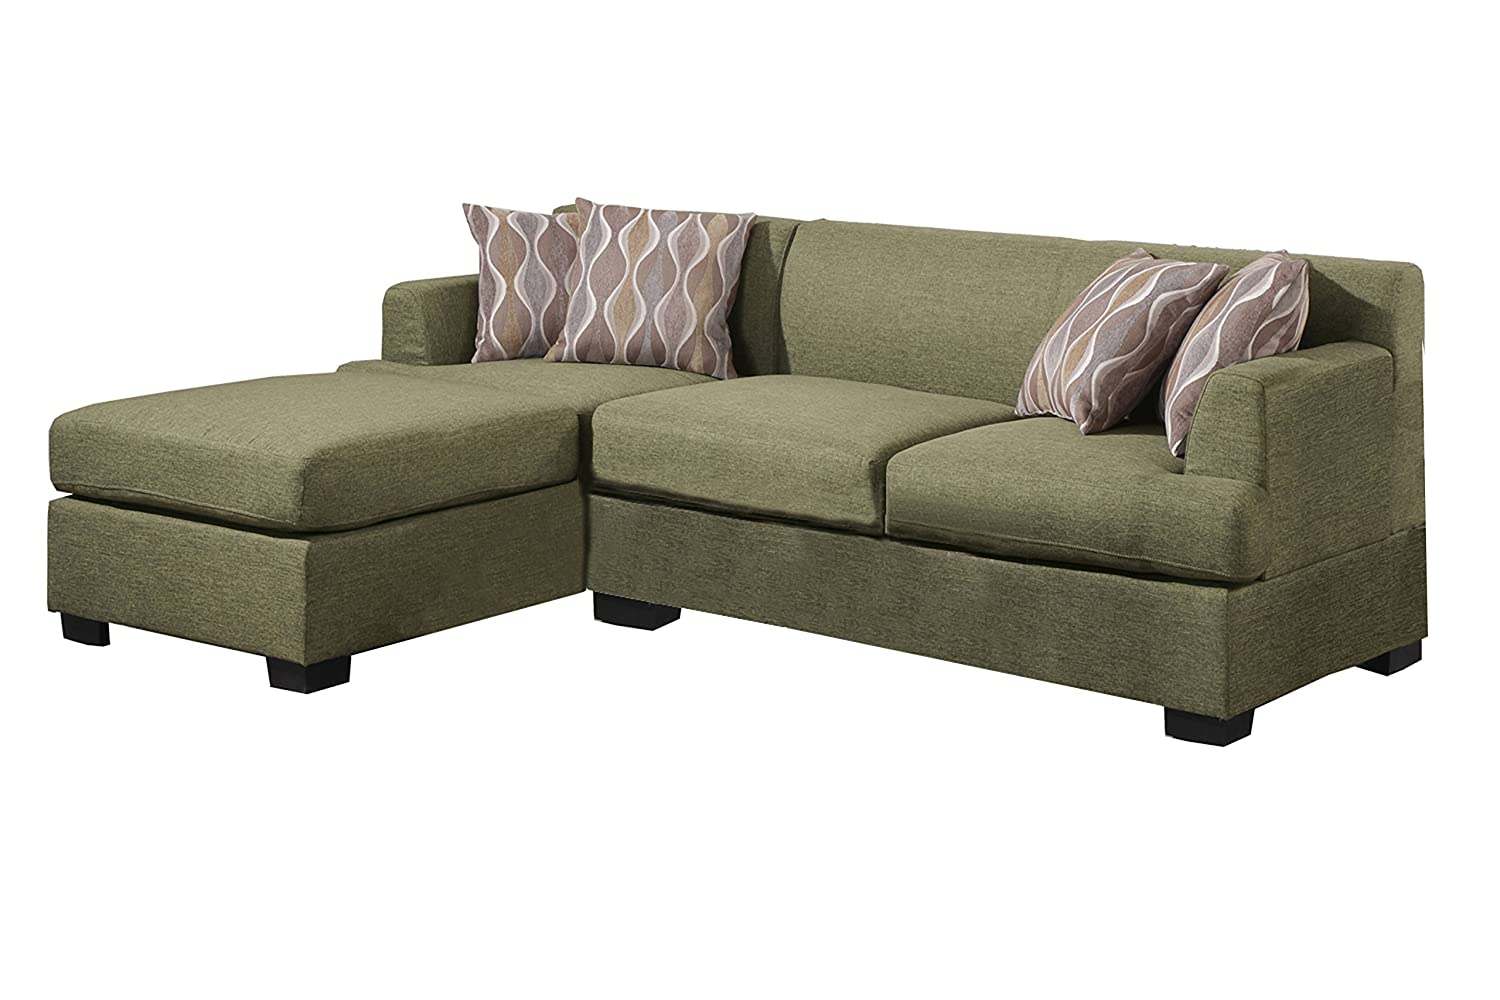 Poundex Bobkona Winfred Blended Linen 2-Piece 3-Seat Reversible Sectional Sofa - Peridot